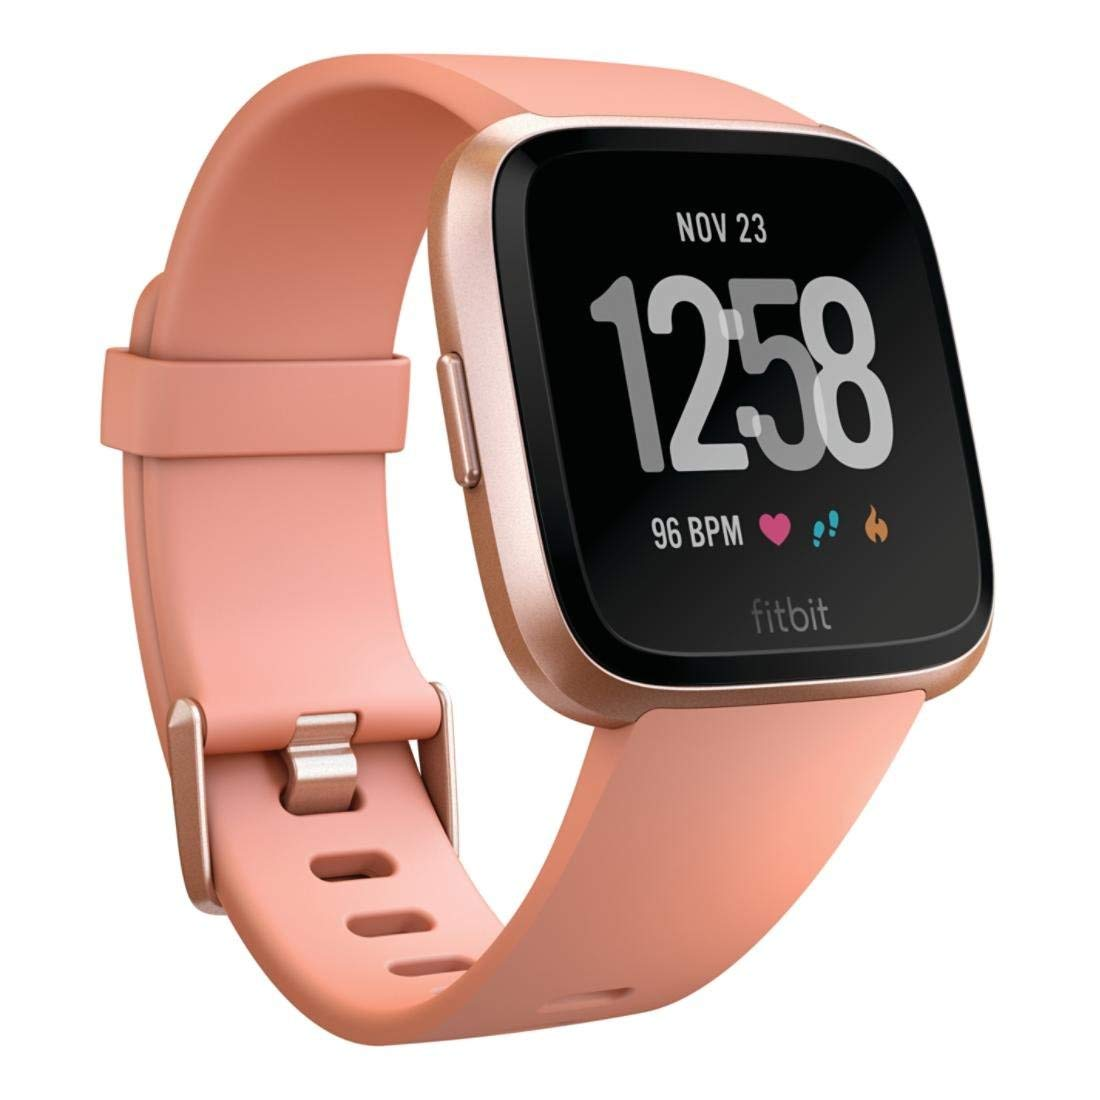 Fitbit Versa Smart Watch, Peach/Rose Gold Aluminium, One Size (S & L Bands Included) by Fitbit